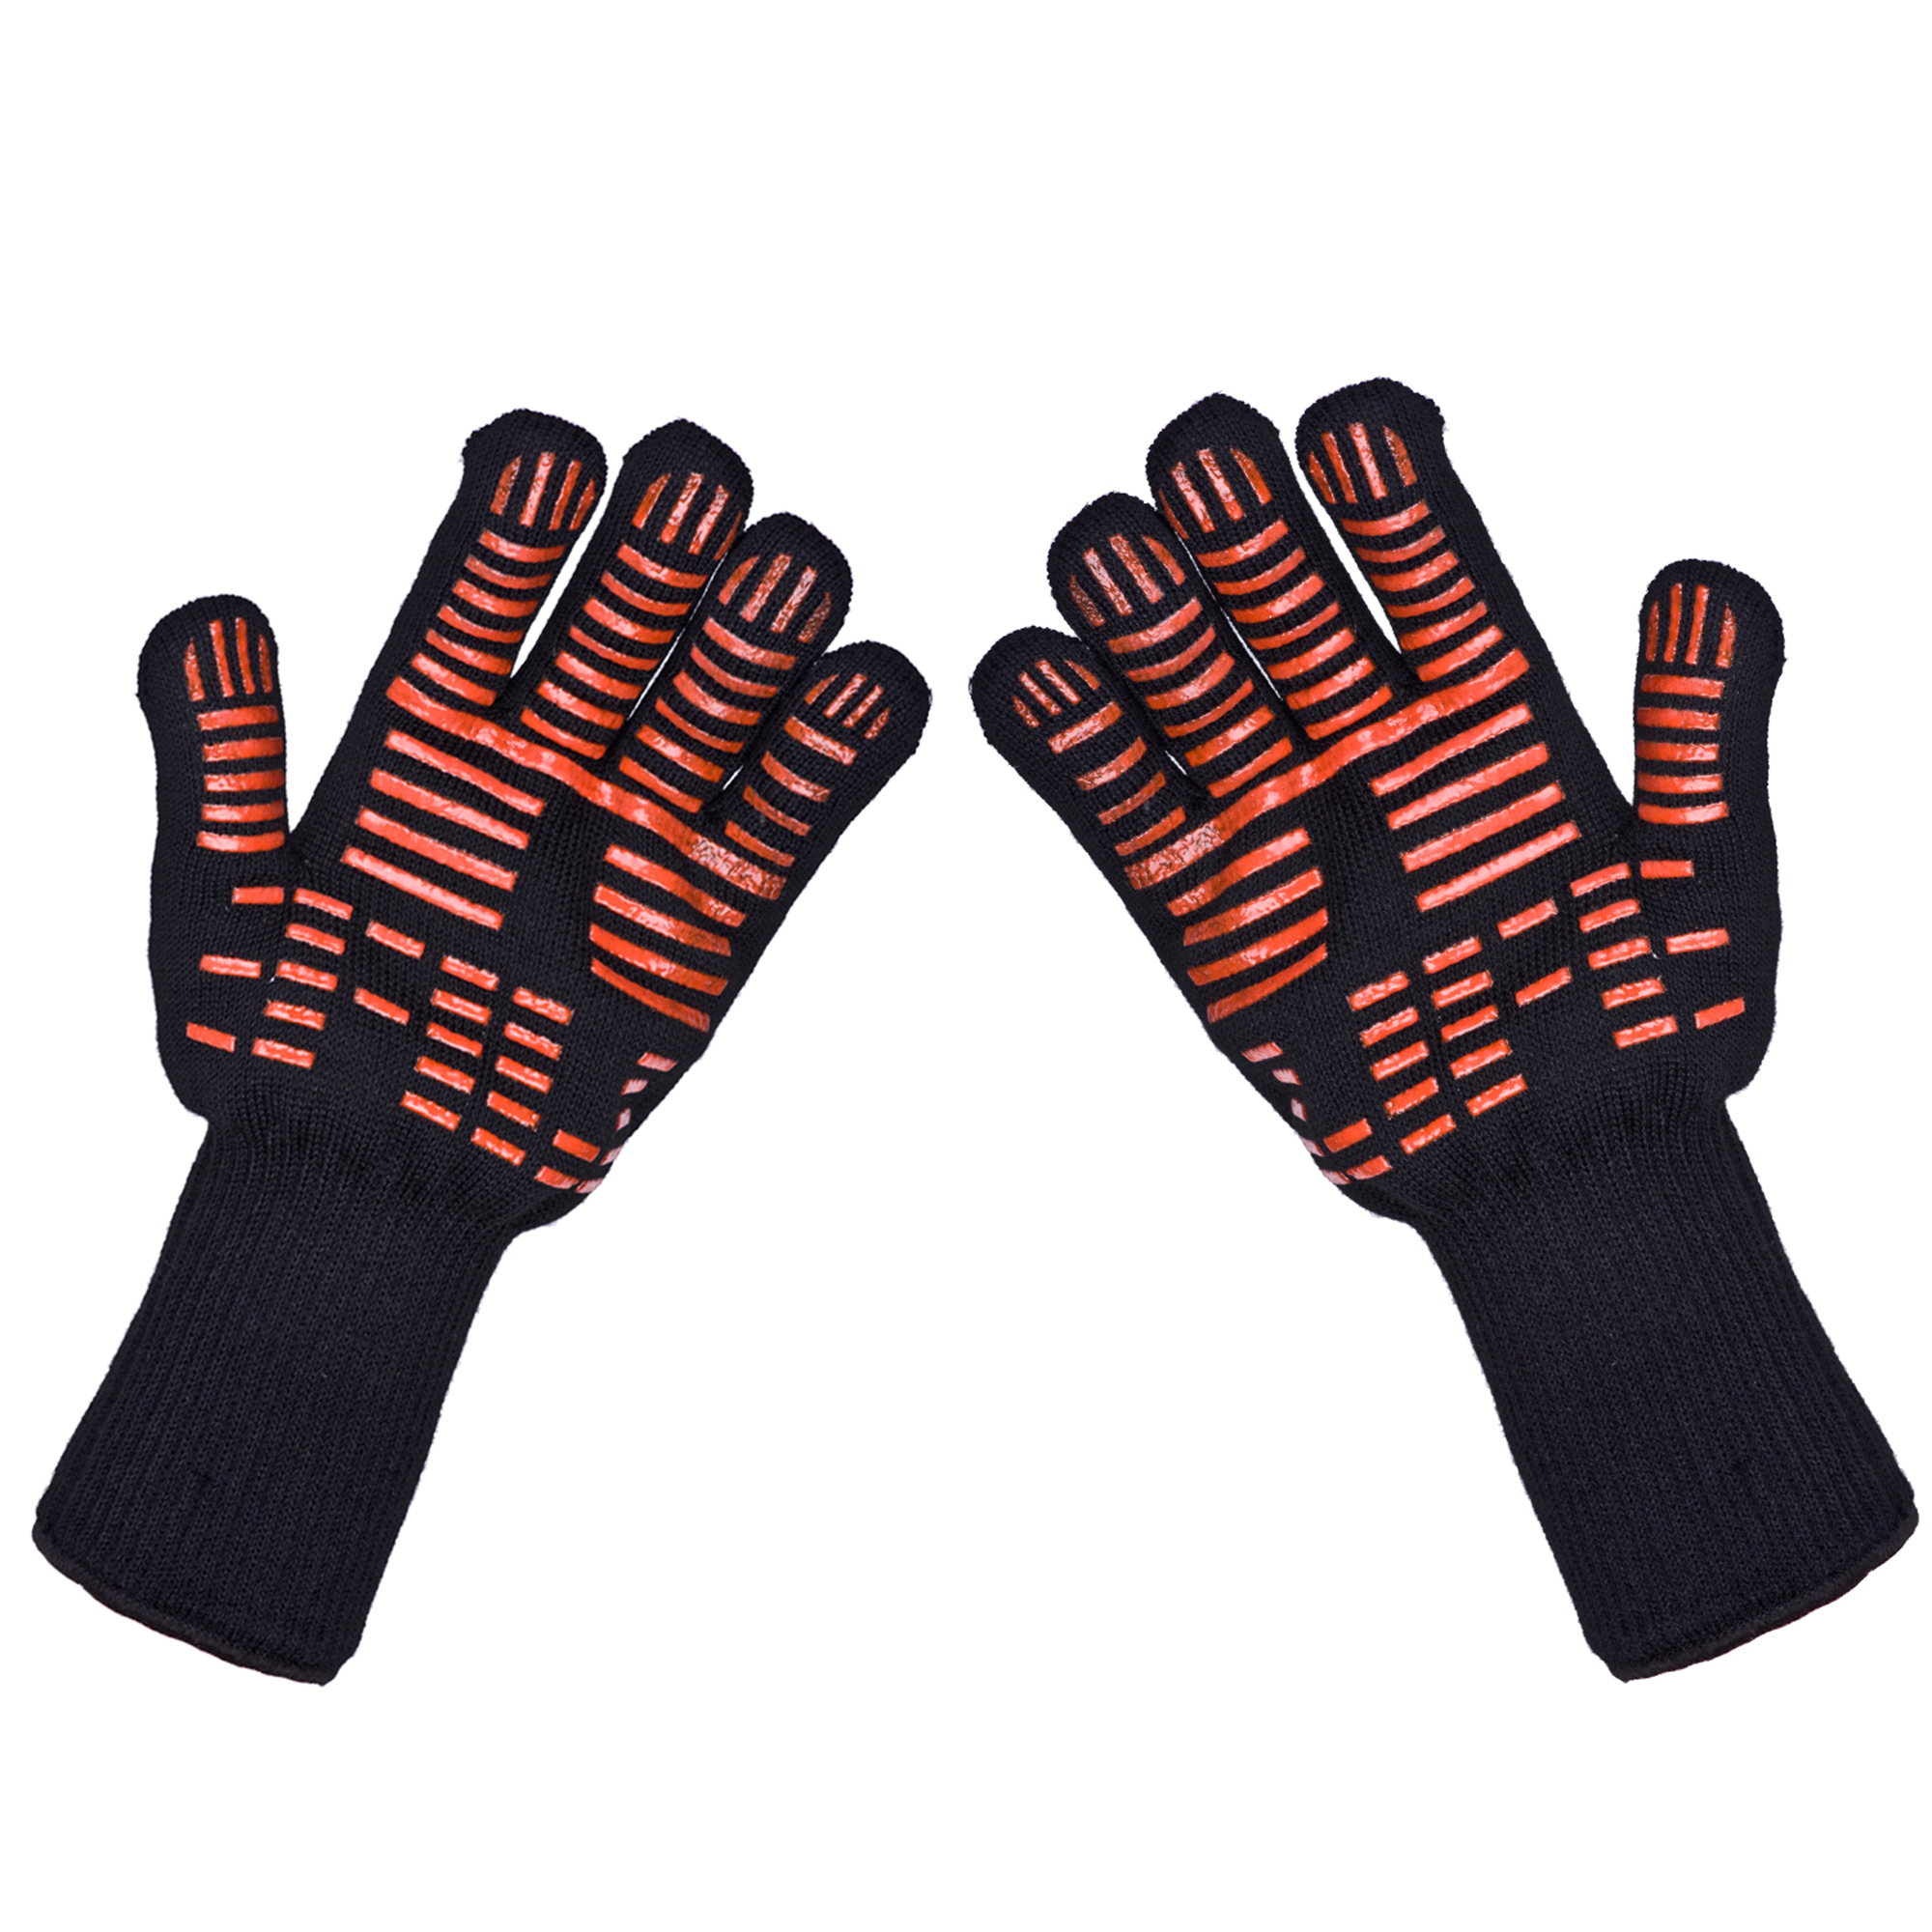 TTLIFE Oven Mitts Gloves BBQ Grilling Cooking Gloves 932F Extreme Heat Resistant Gloves Long For Extra